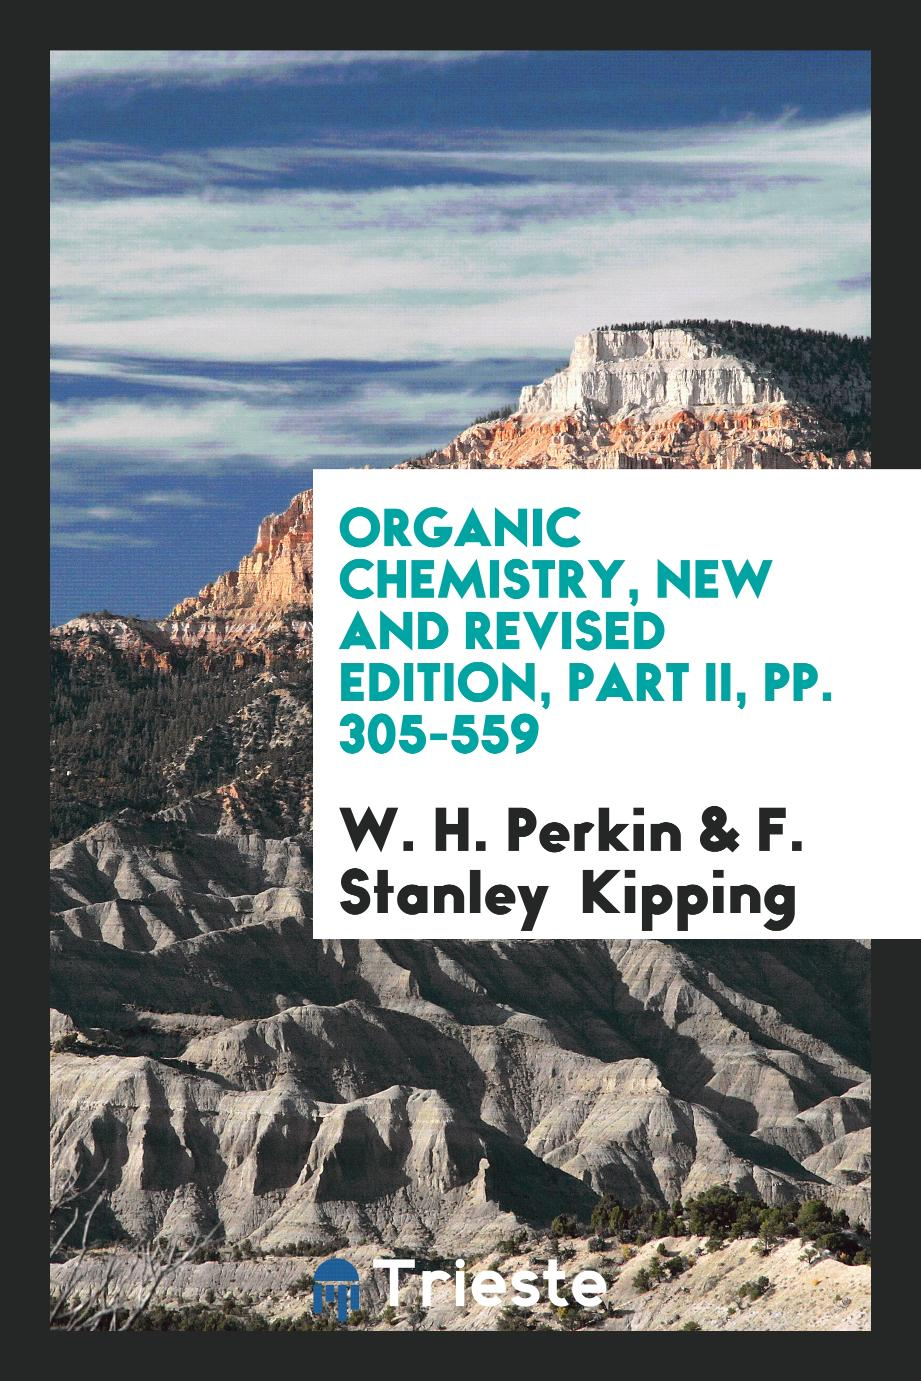 Organic Chemistry, New and Revised Edition, Part II, pp. 305-559